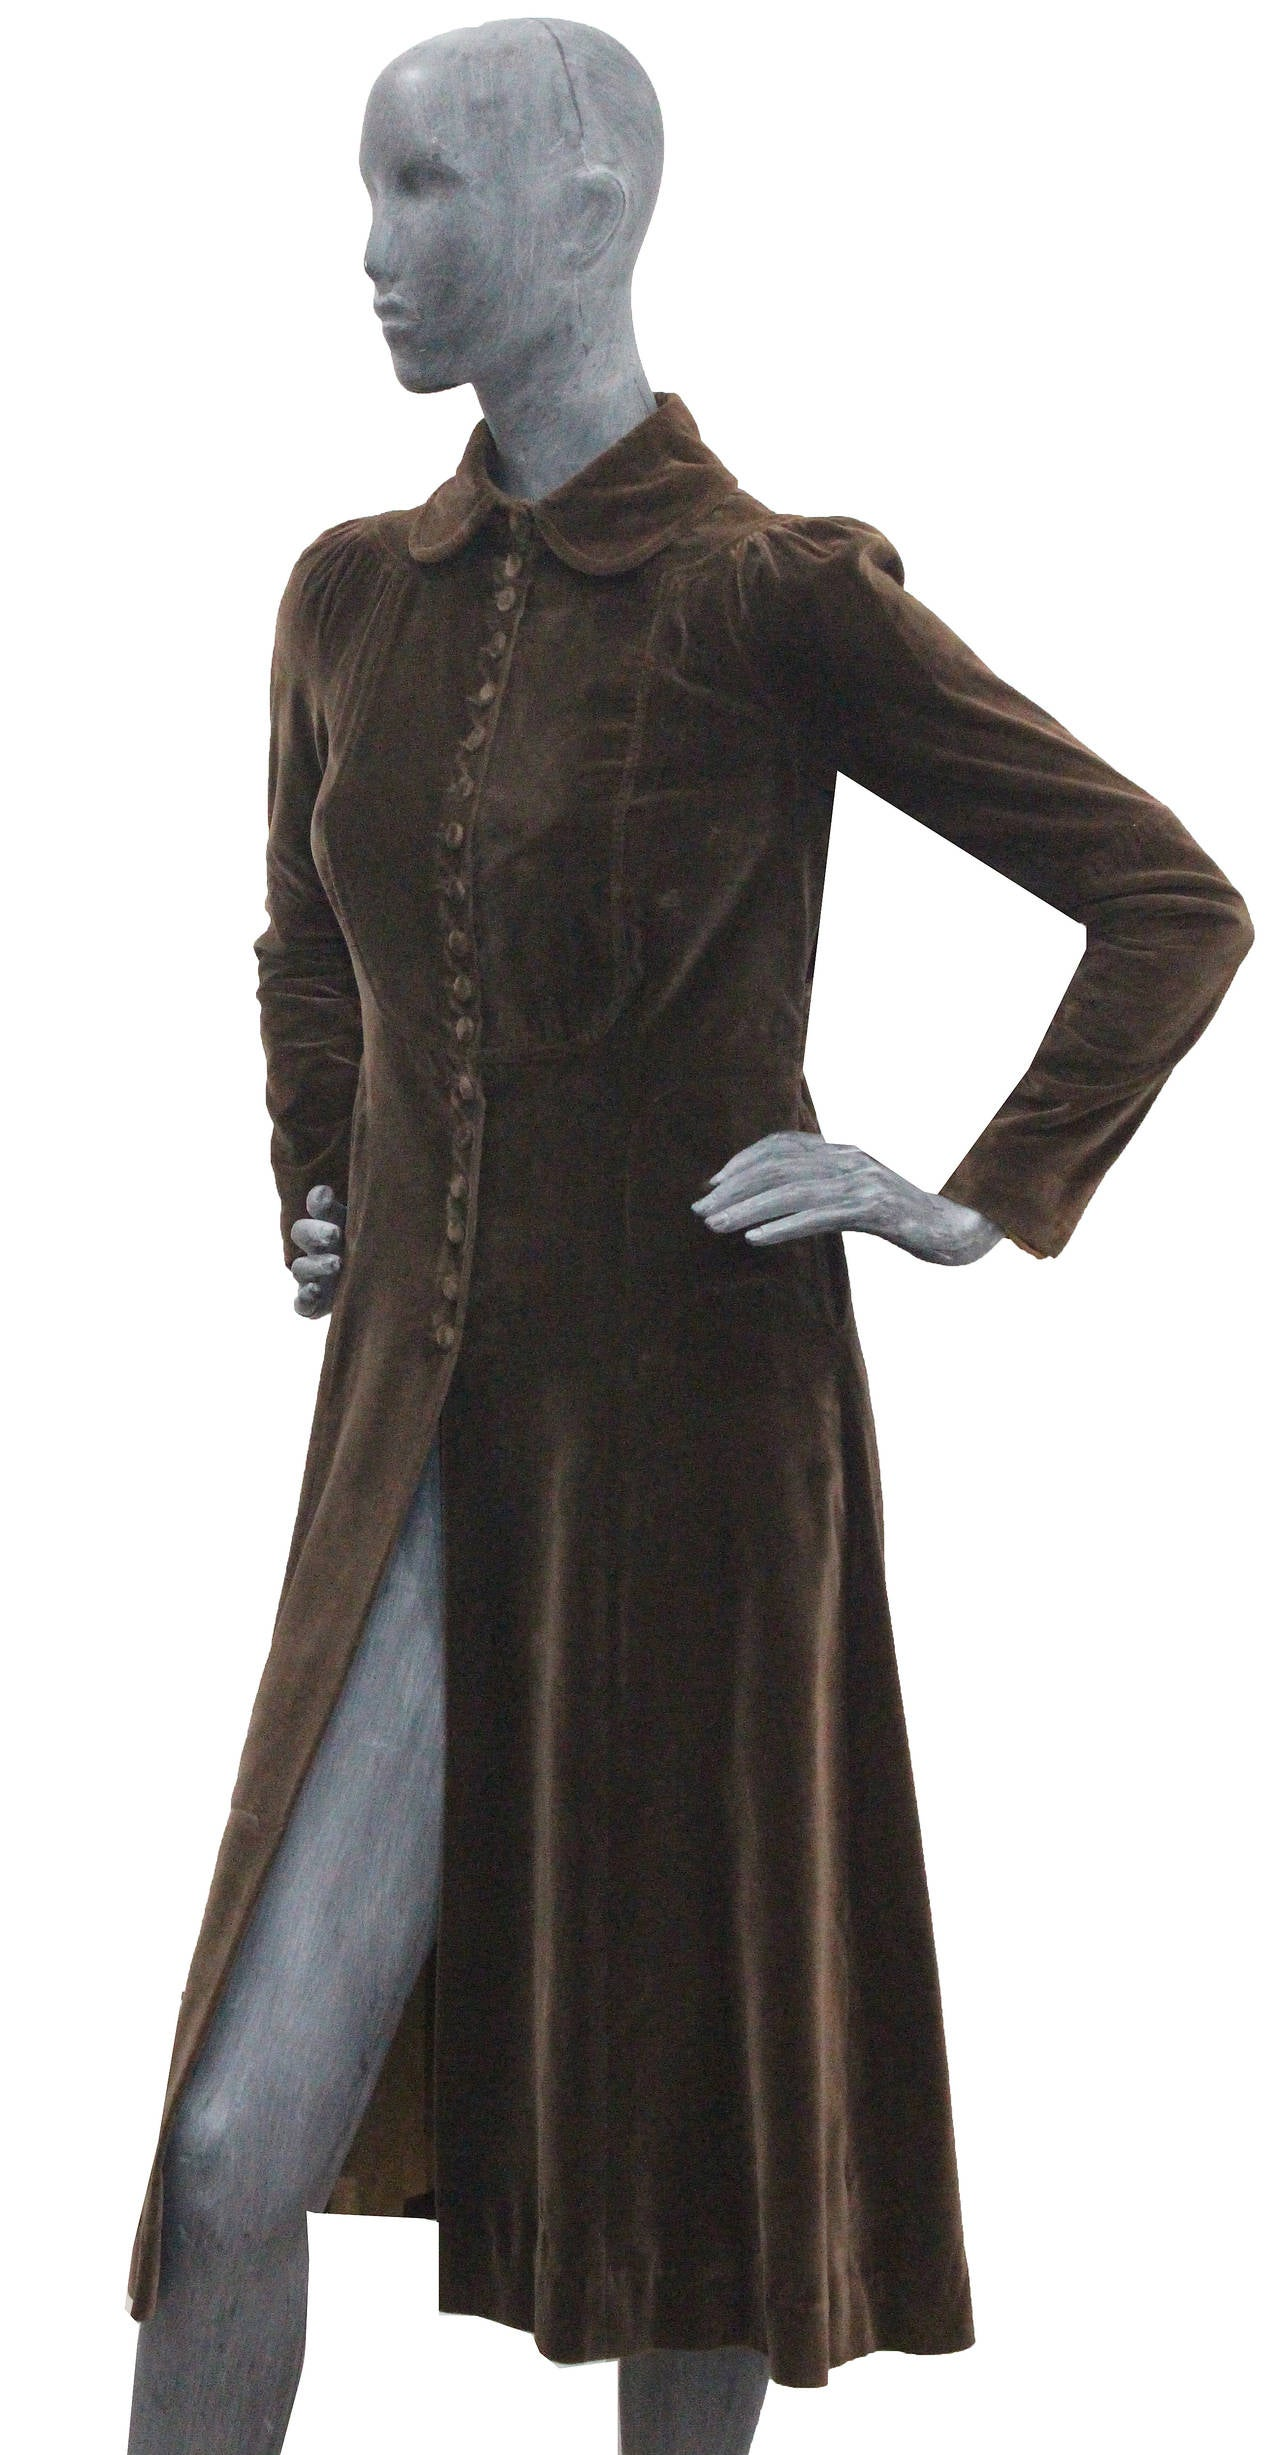 A fine and rare Ossie Clark brown velvet coat made exclusively for Bonwit Teller (New York, U.S.A.). The coat has a pleated back with a hanging belt, pleated fitted sleeves, two hidden open front pockets and velvet fabric buttons running through the